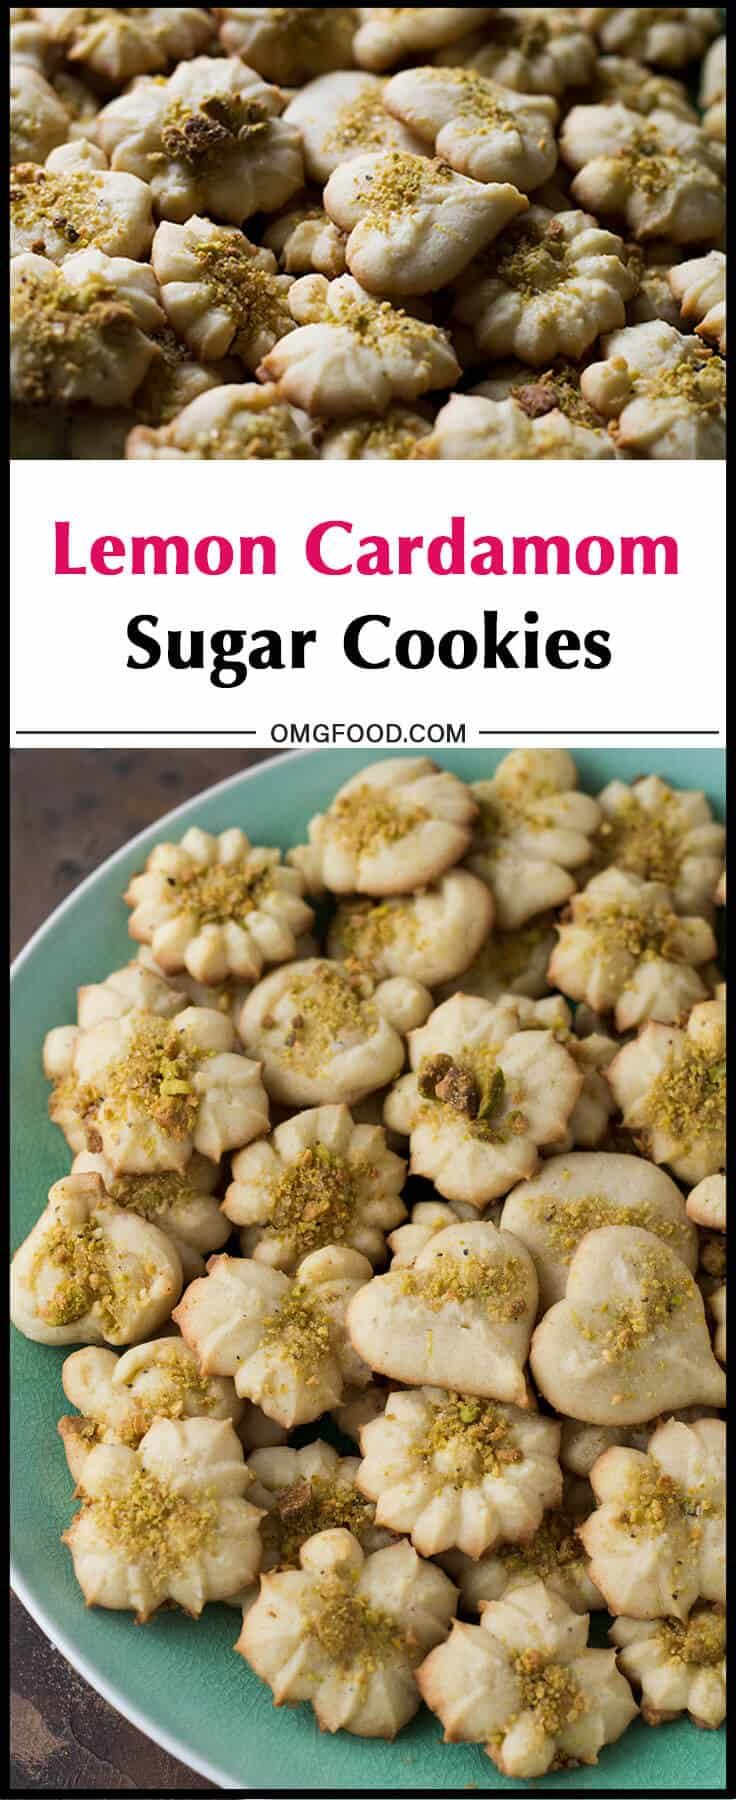 Lemon Cardamom Sugar Cookies | omgfood.com